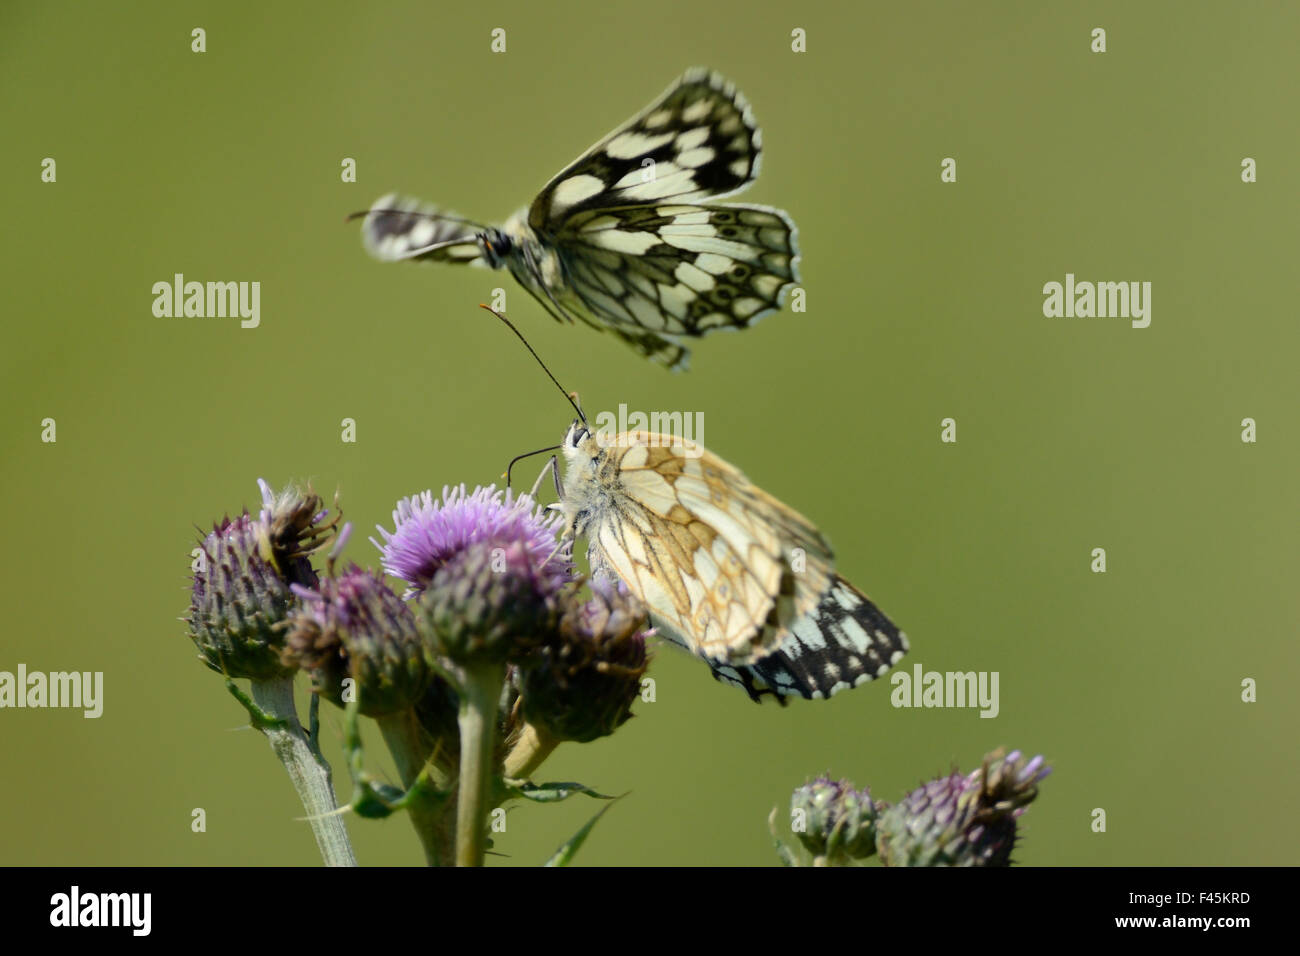 Female Marbled white butterfly (Melanargia galathea) feeding on a Creeping thistle flower (Cirsium arvense) in a - Stock Image